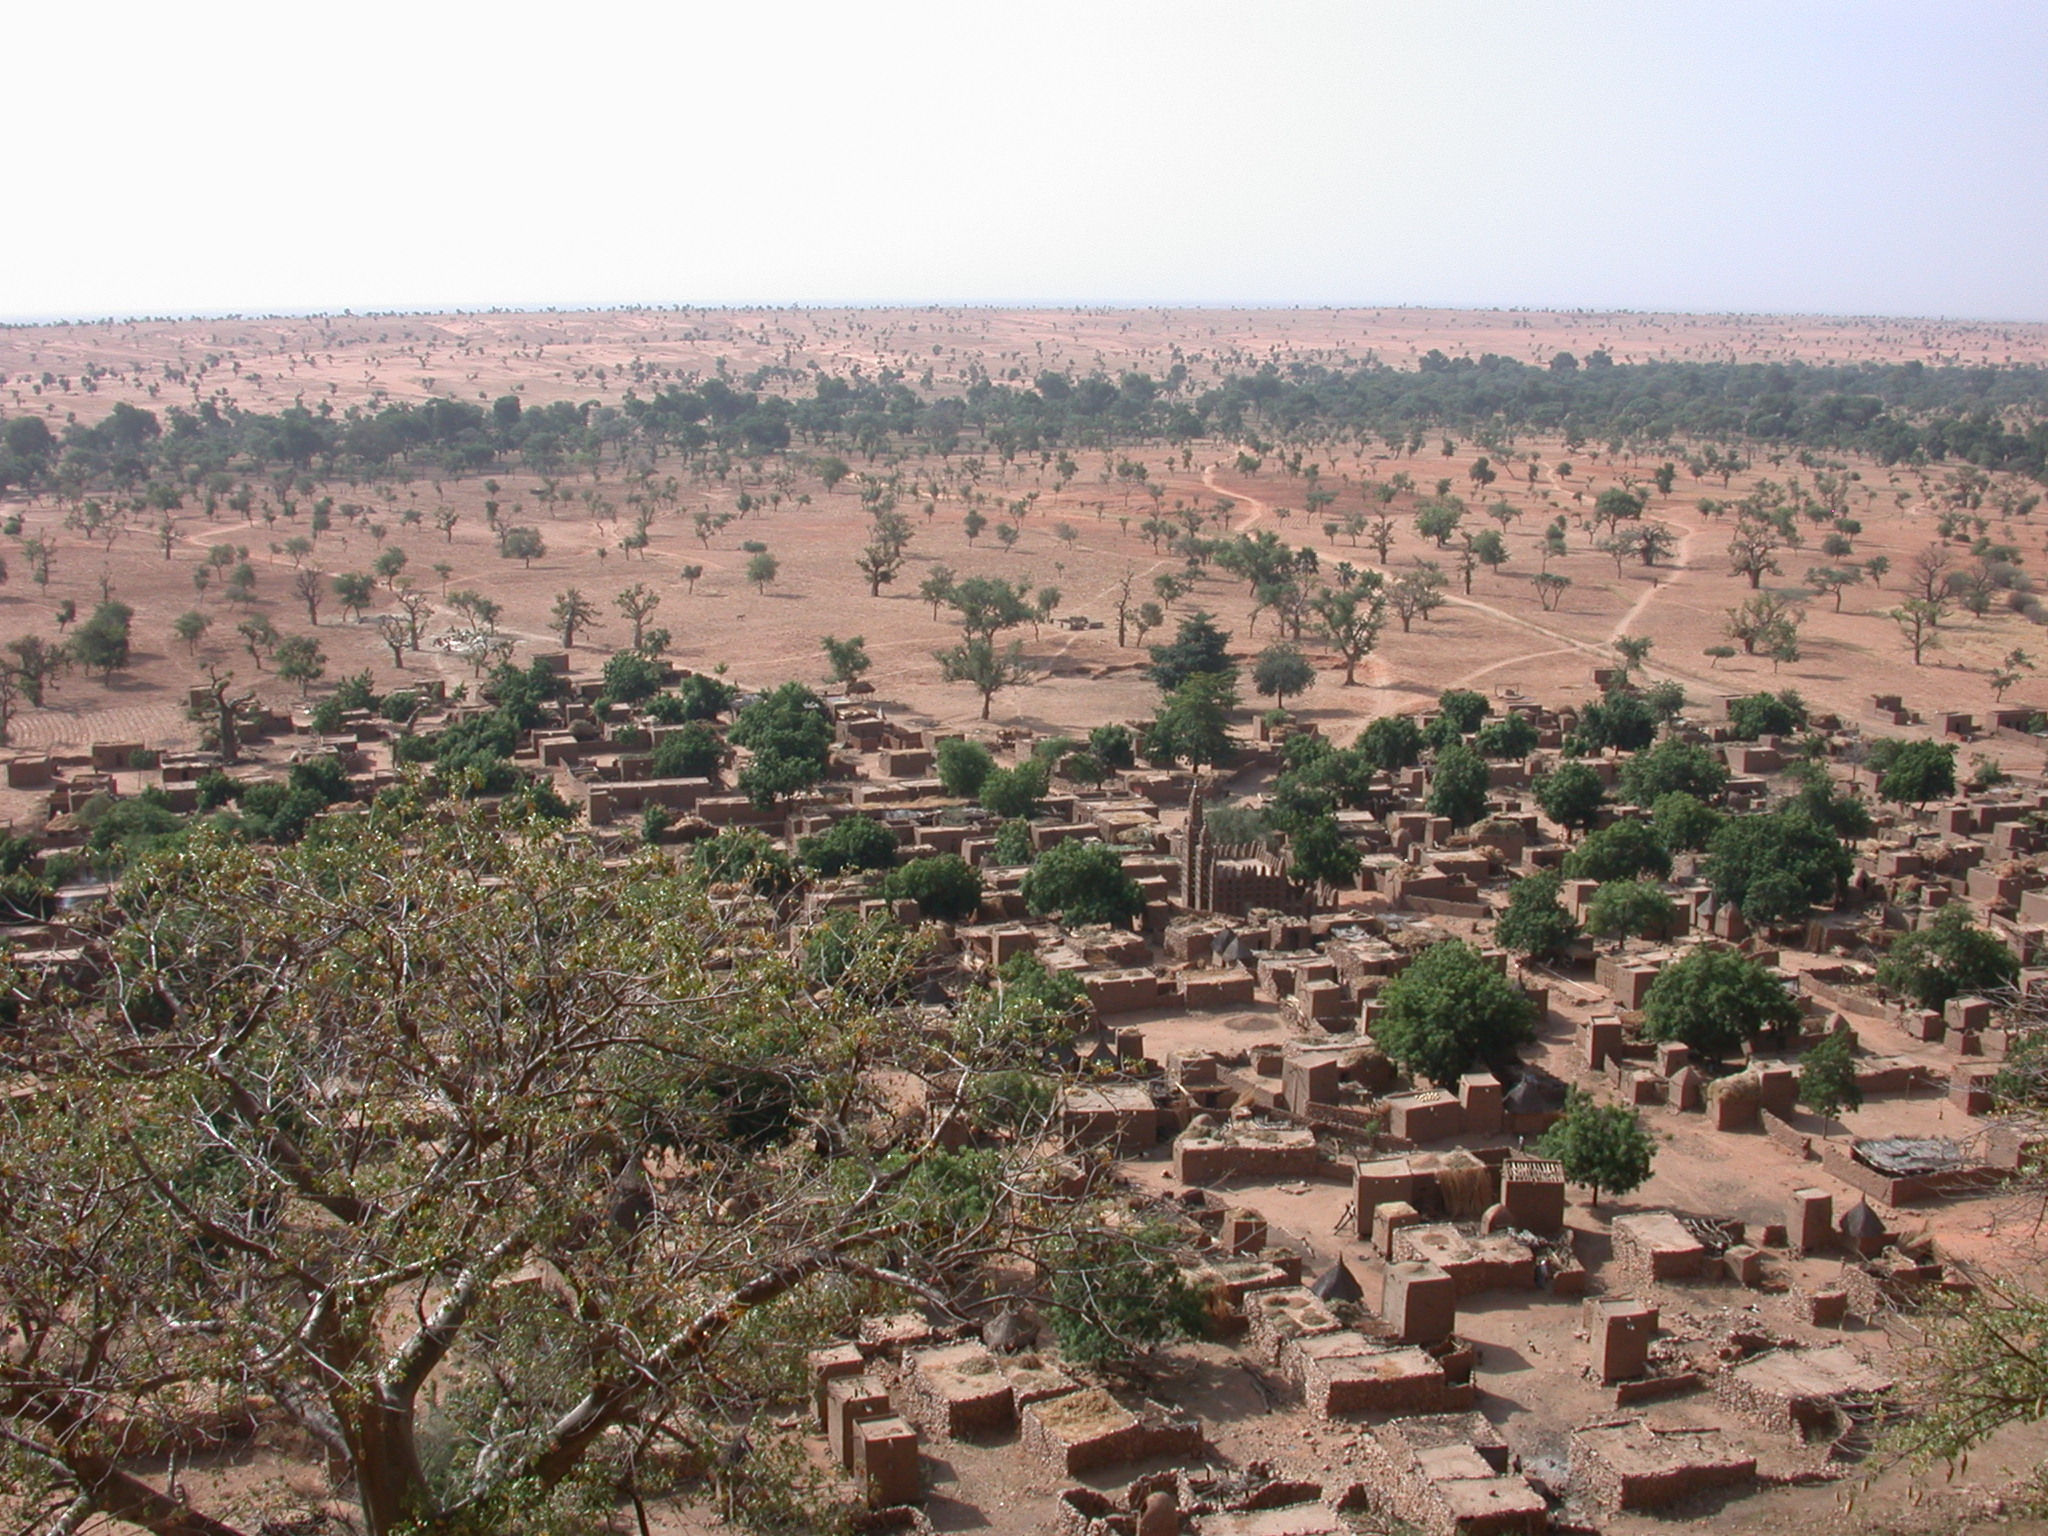 View of Village From Falaise Escarpment, Tellem Village, Dogon Country, Mali